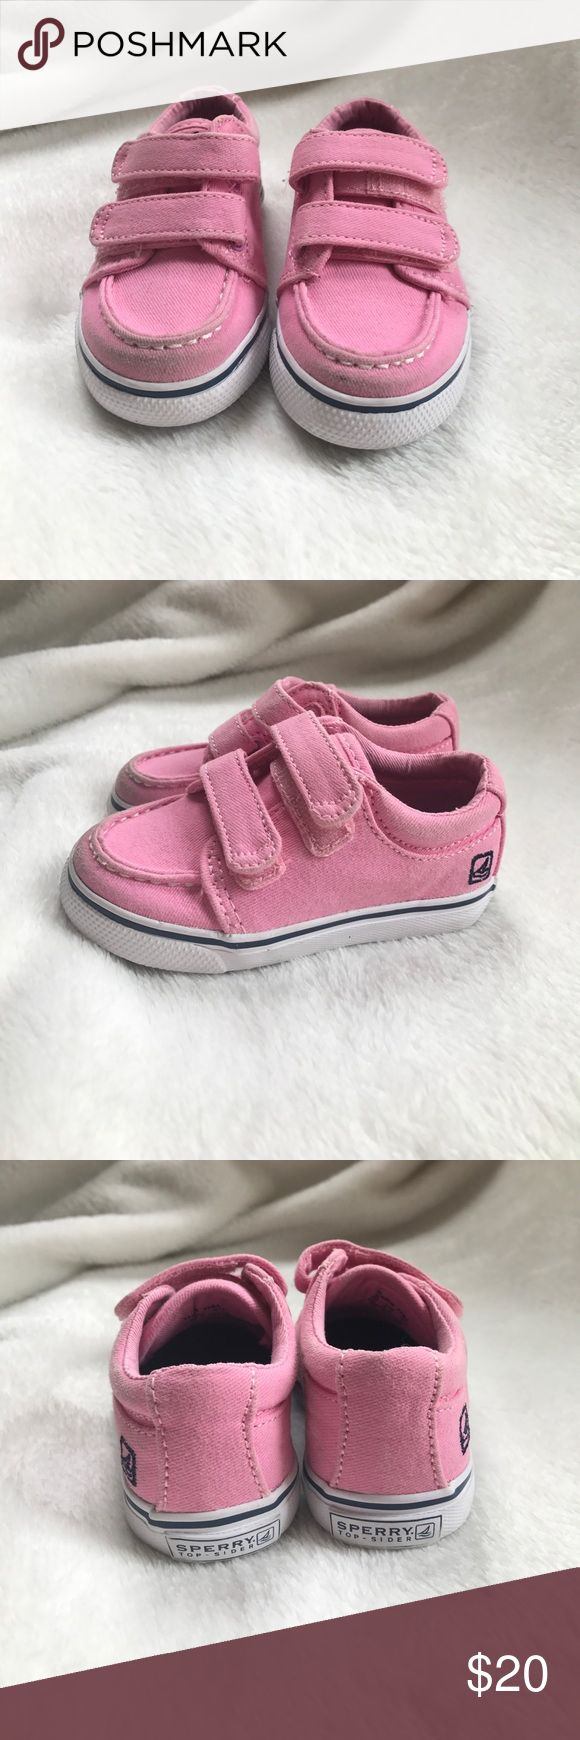 Pink Sperry Velcro Sneakers. Baby girl size 4.5 Pink Sperry Top-Sider Velcro sneakers, size 4.5 baby girl. Toe of shoes is a bit dirty as you can see in picture but soles are perfect. Sperry Top-Sider Shoes Sneakers